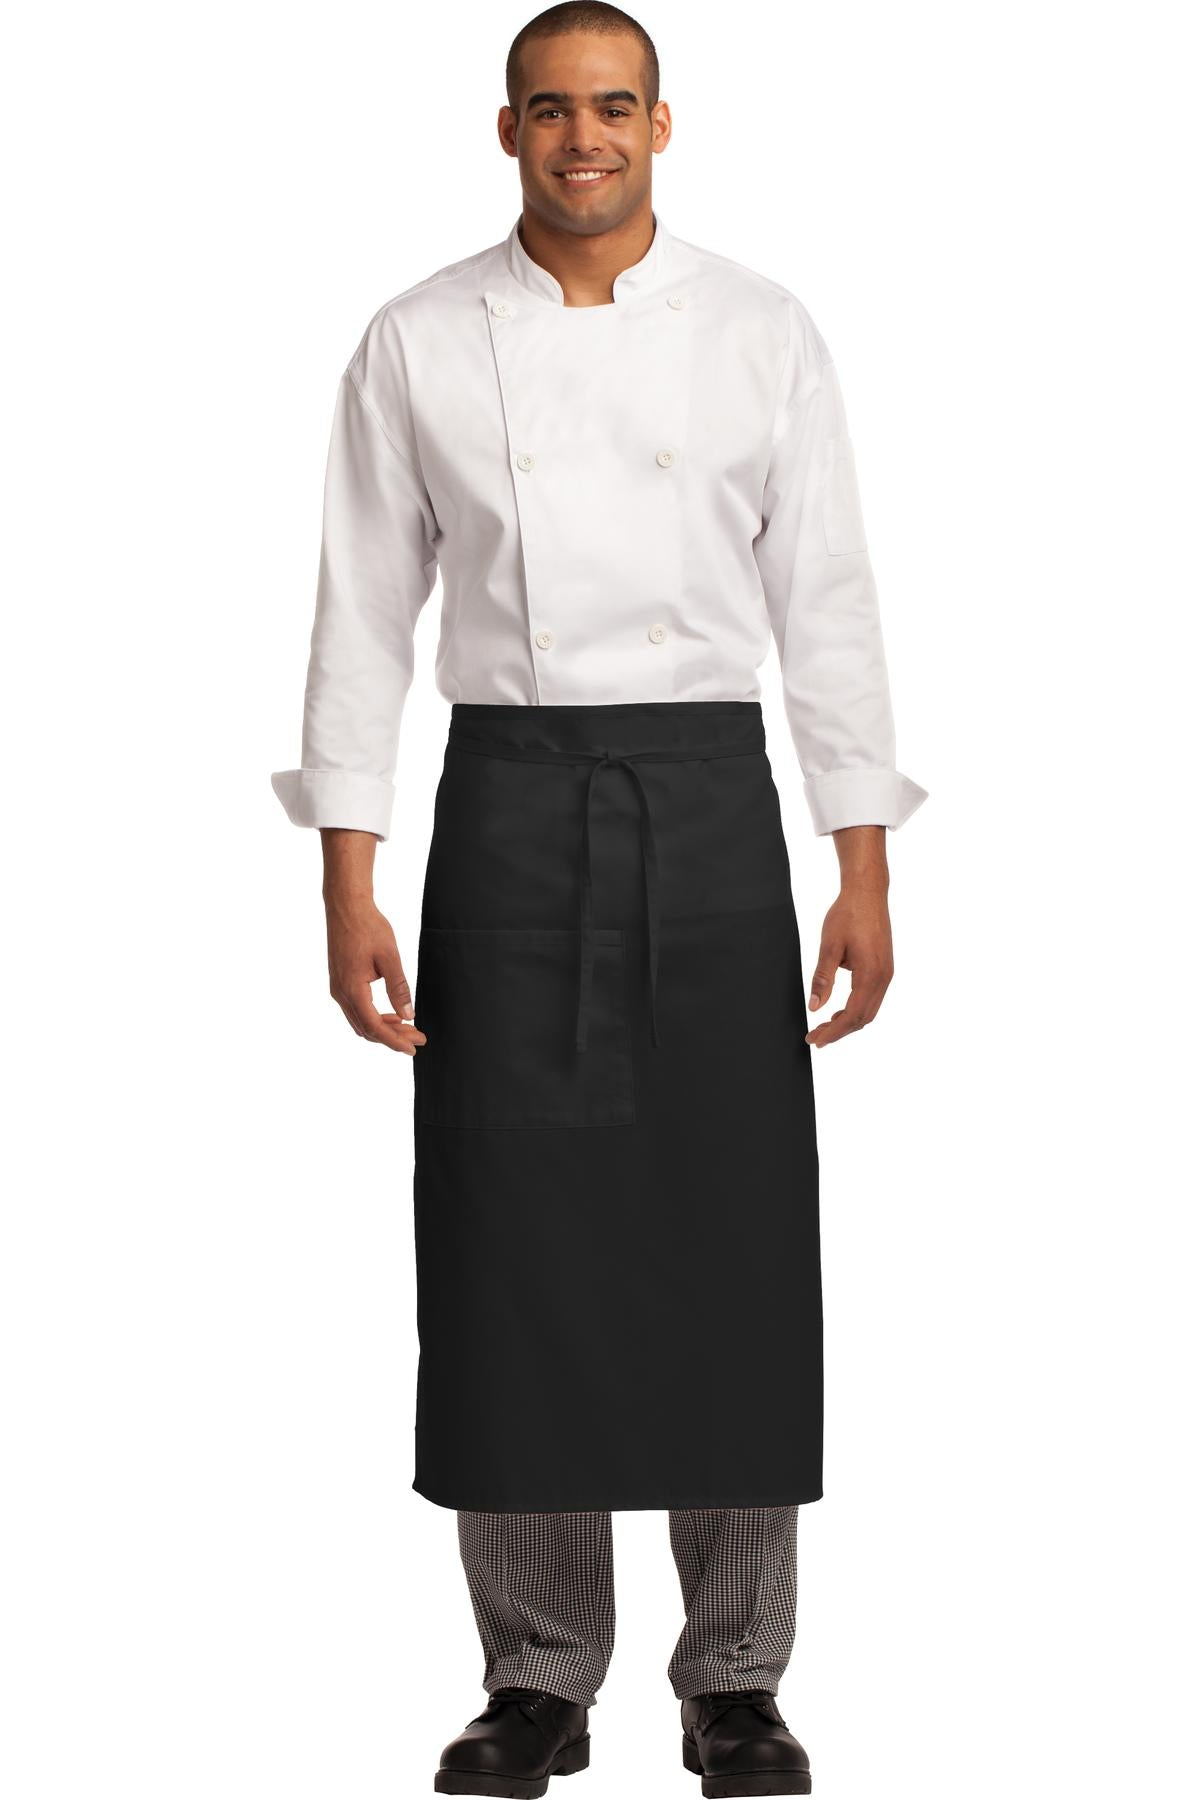 Port Authority Easy Care Full Bistro Apron with Stain Release. A701